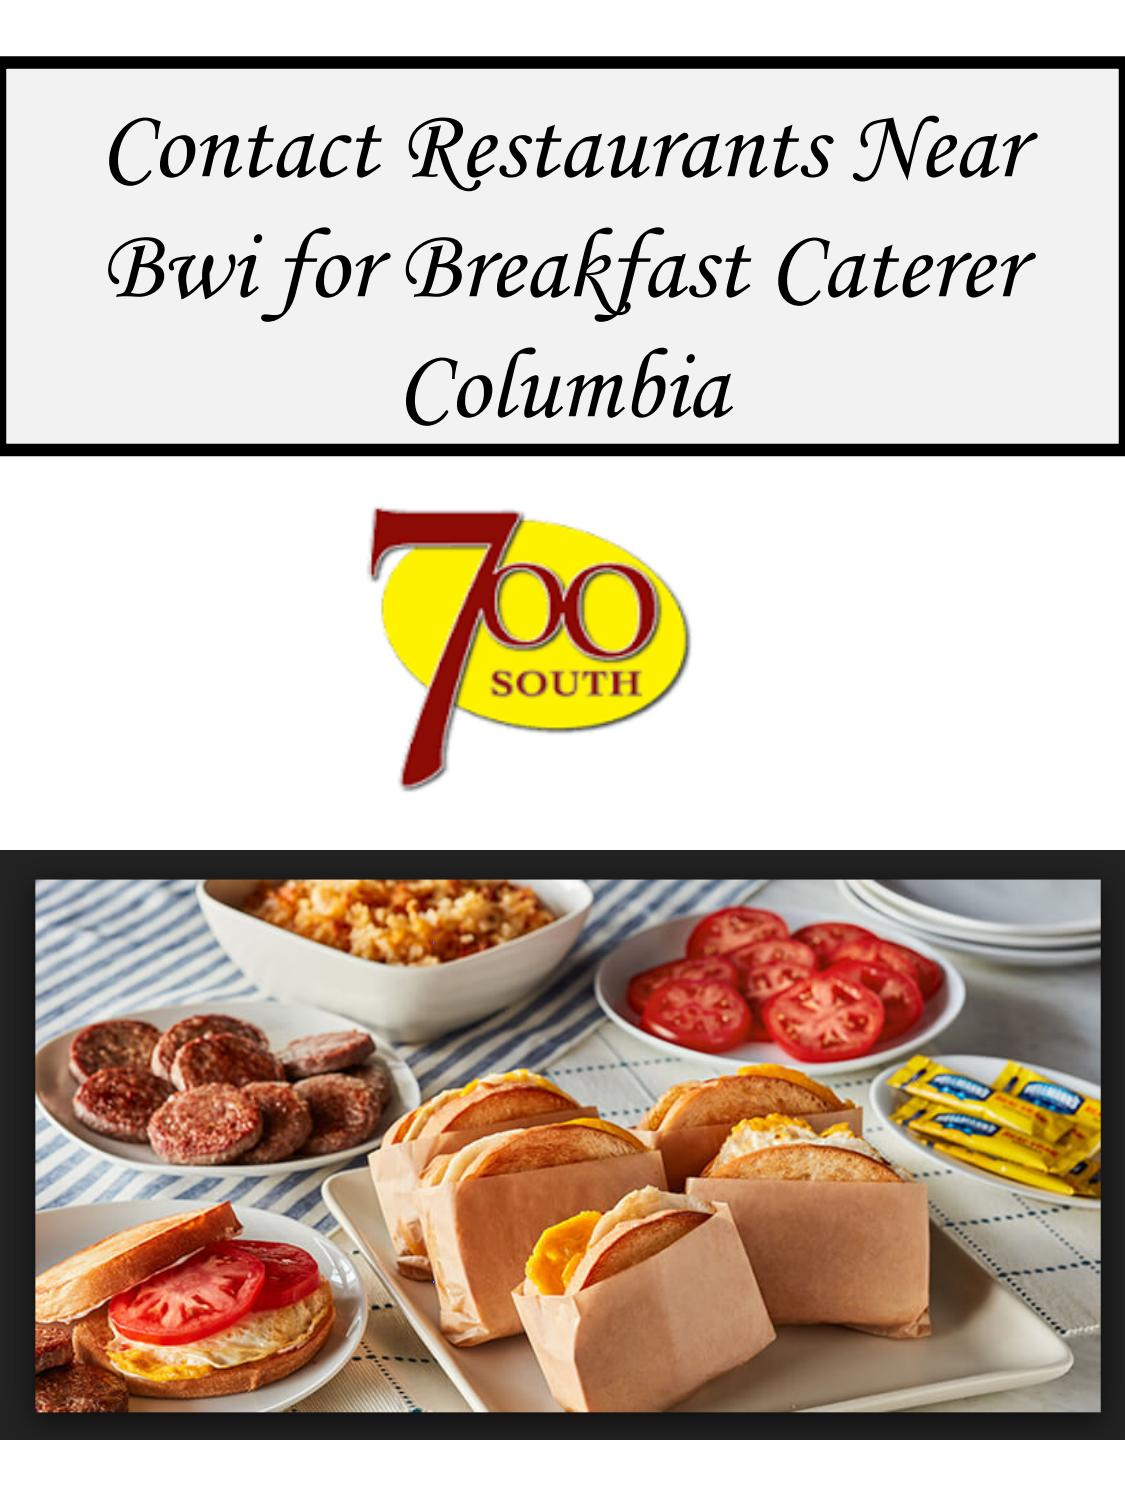 Contact Restaurants Near Bwi For Breakfast Caterer Columbia